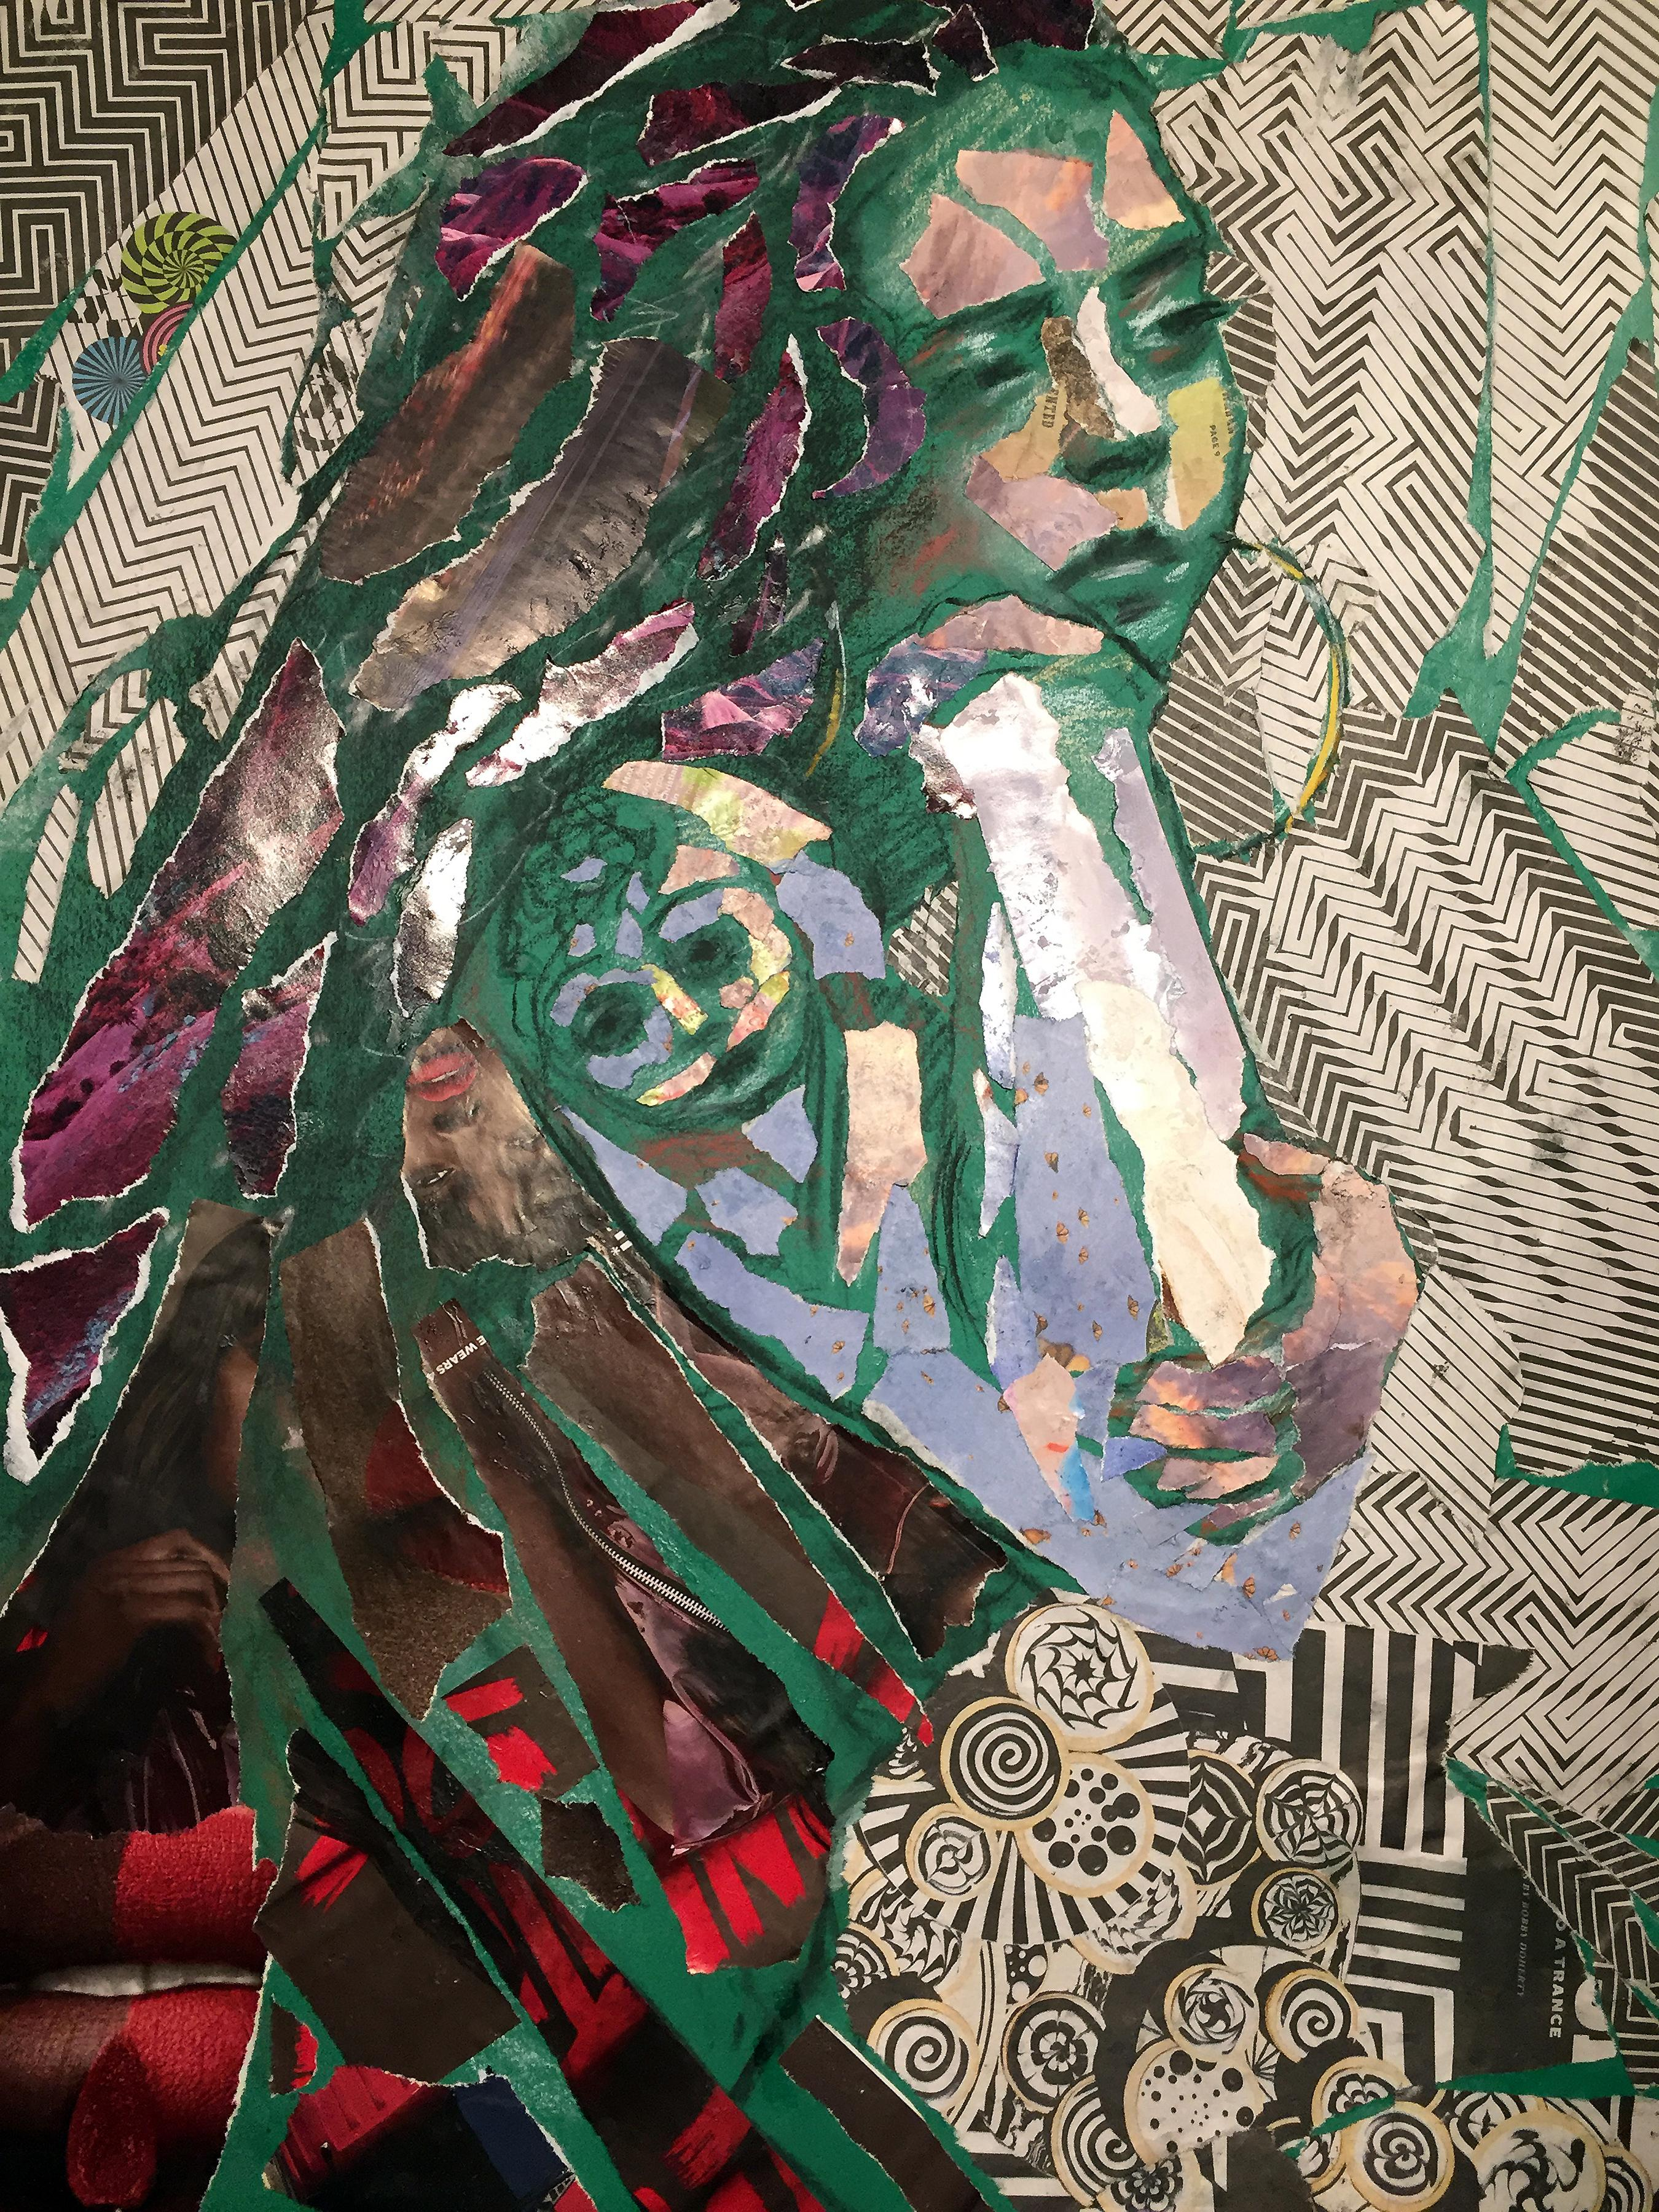 Green Girl with Tattoo, patterns, collage, disrupted realism, mixed media